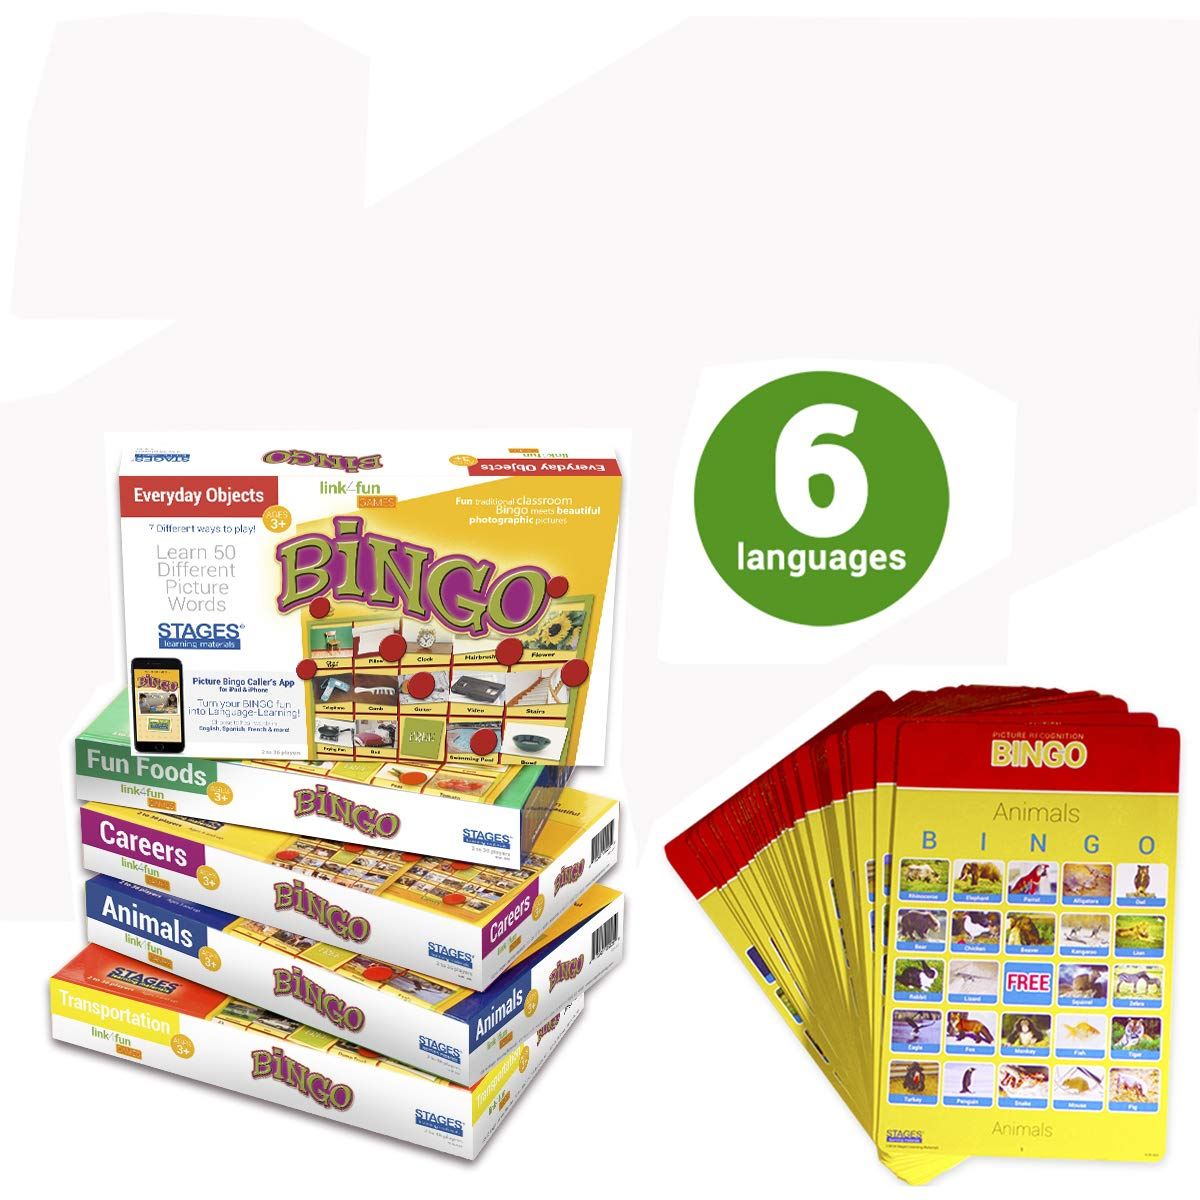 Stages Learning Materials Link4fun Real Photo Bingo 5-Game Set for Family, Preschool, Kindergarten, and Elementary Education: 180 Picture Cards + App by Stages Learning